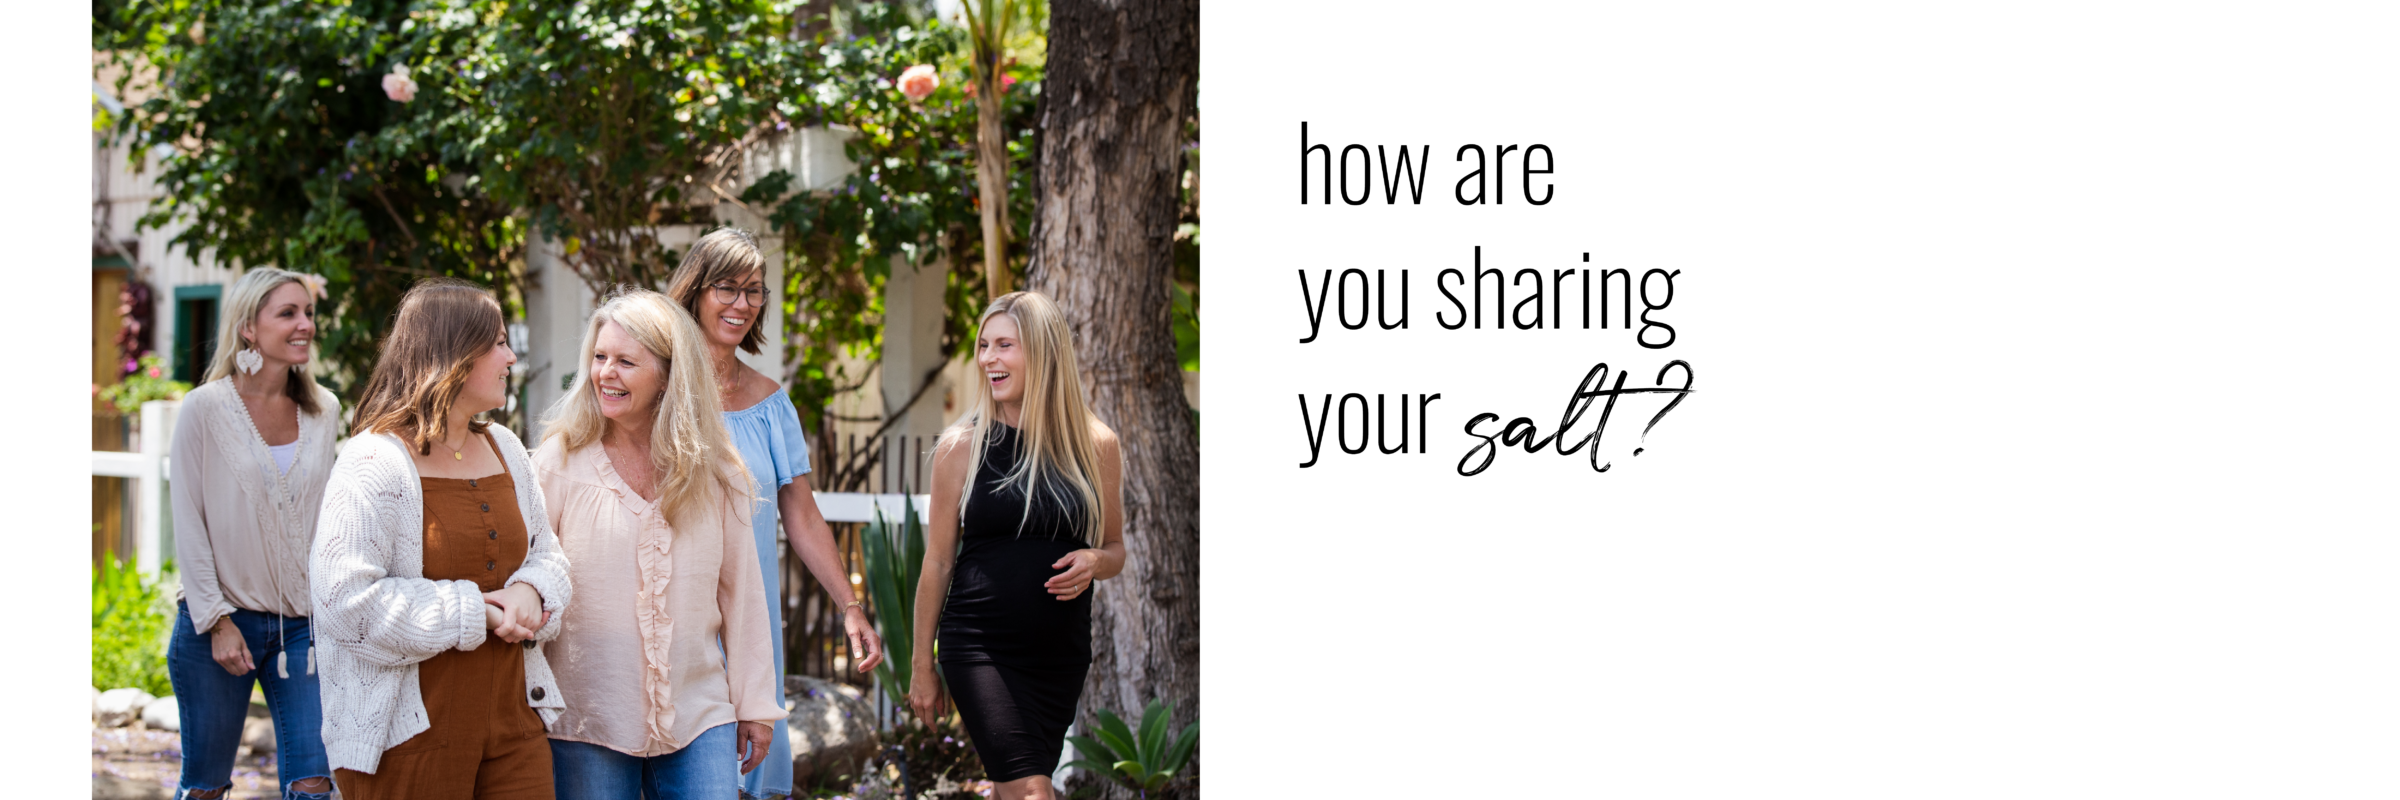 how are you sharing your salt?